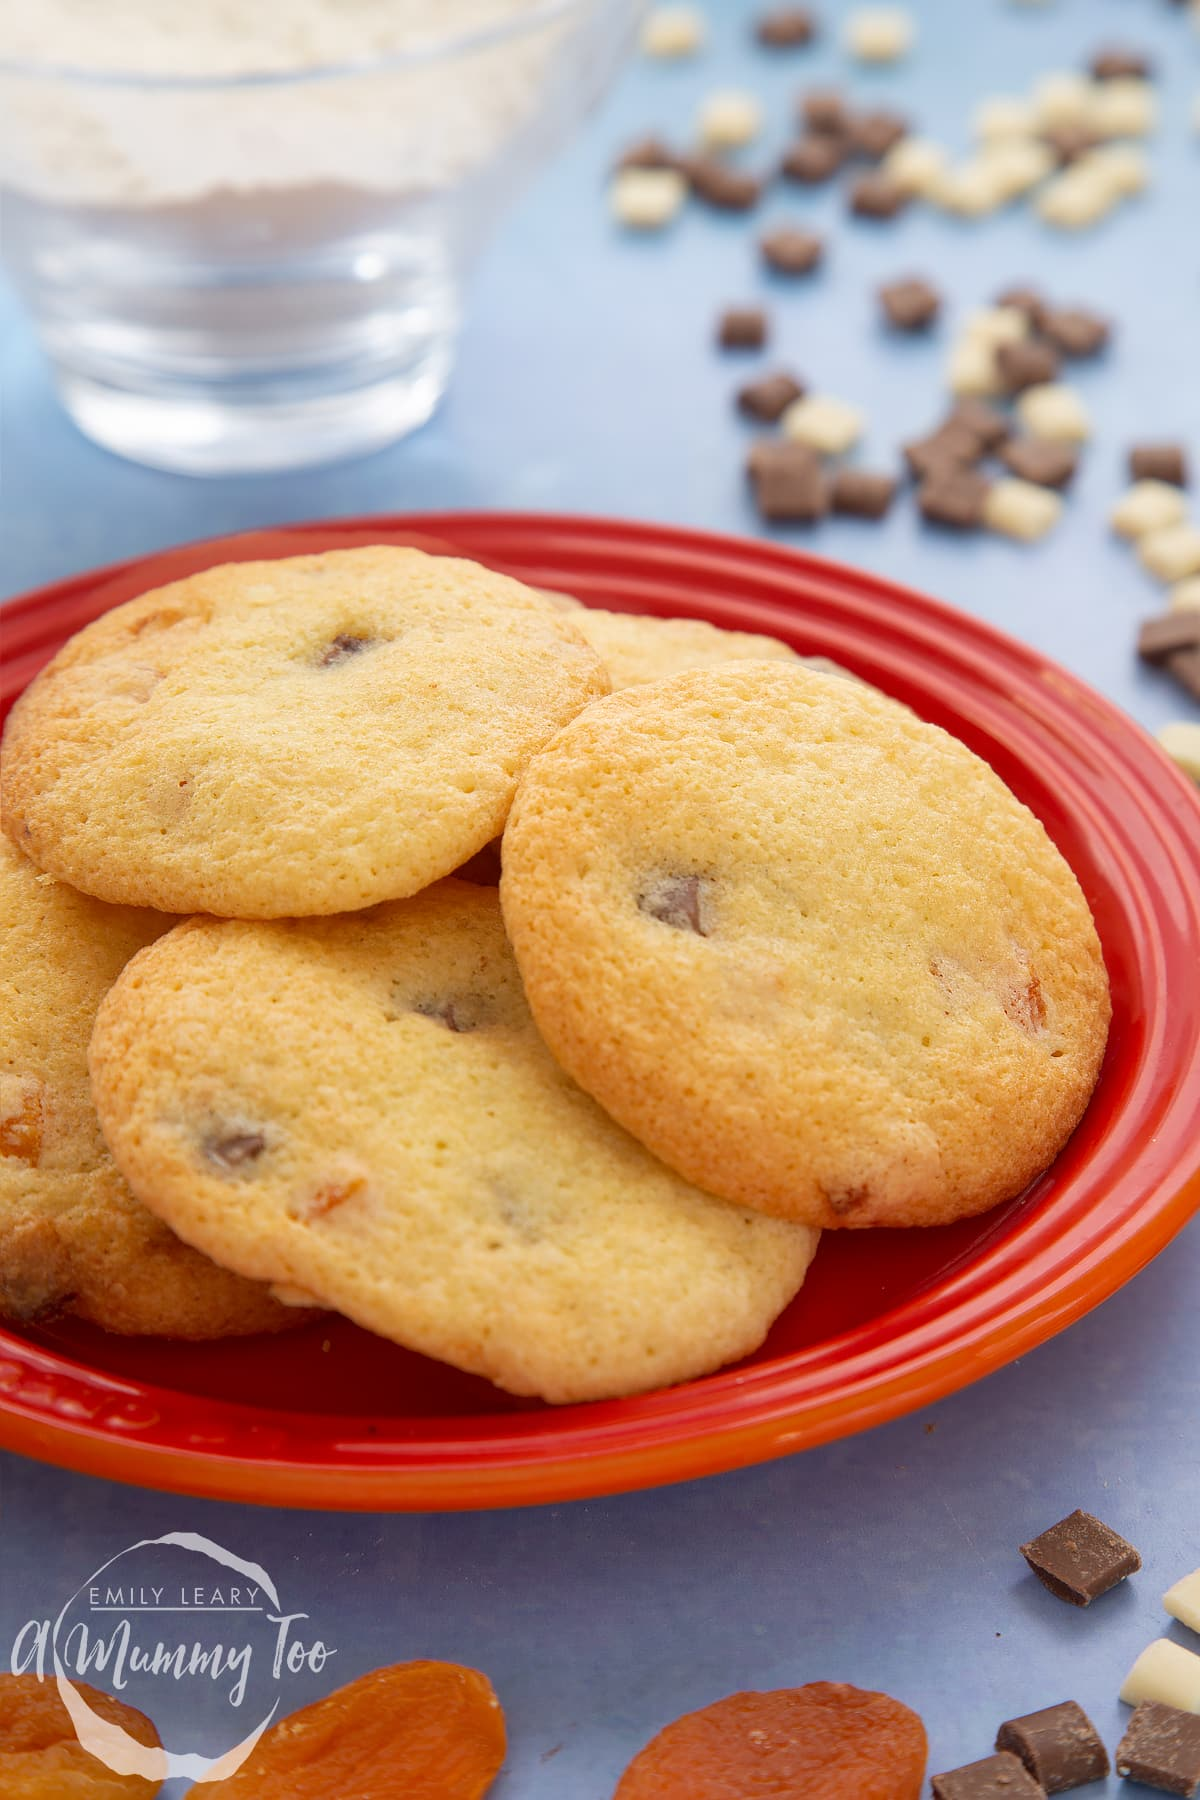 Apricot chocolate chip cookies on a small orange plate. Chocolate chips and dried apricots are scattered around.